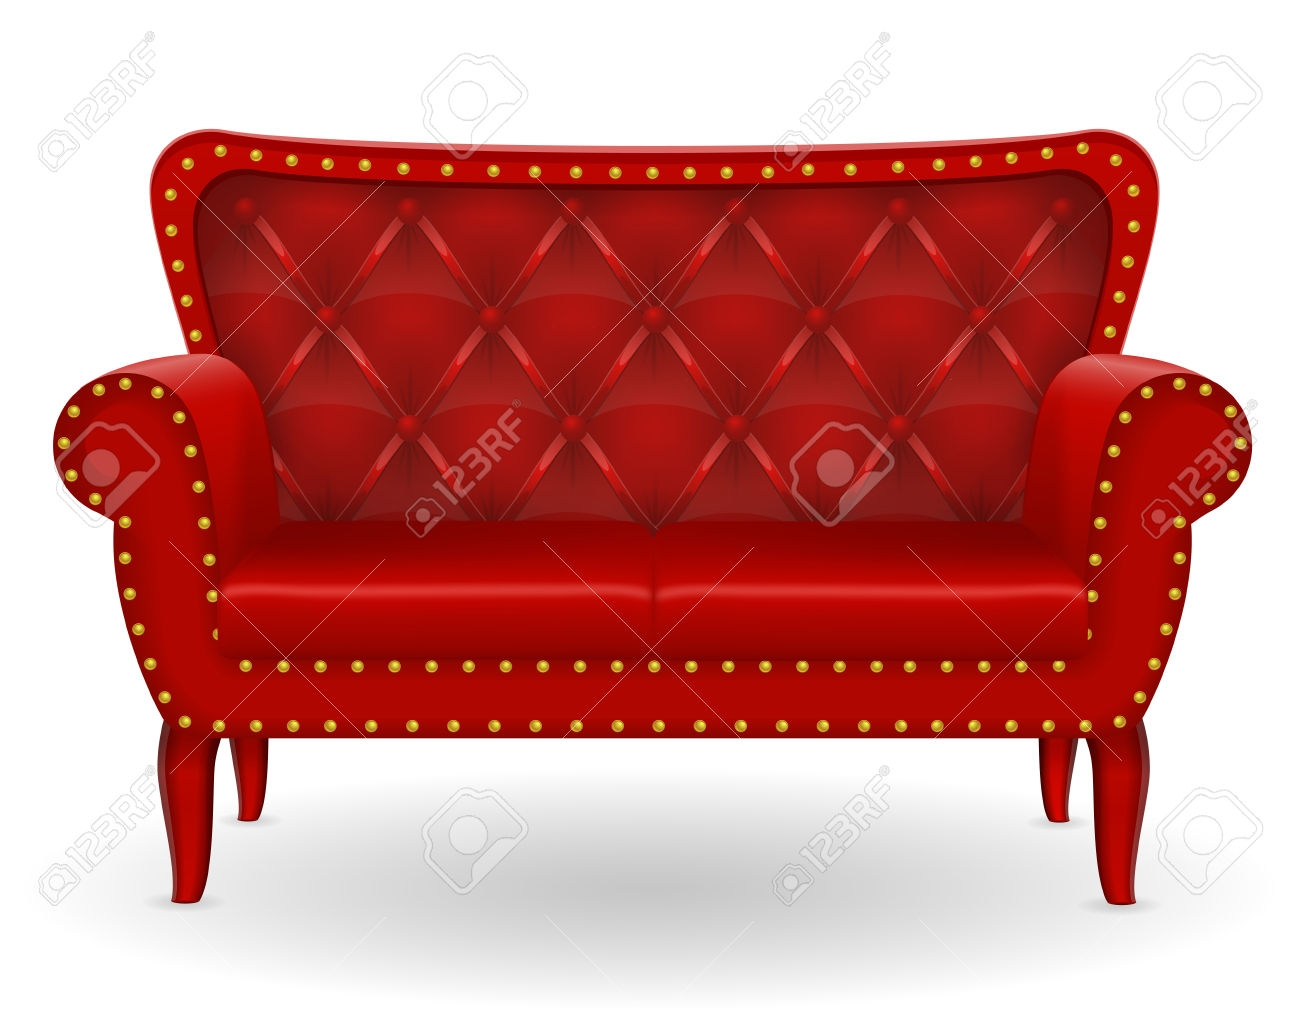 Red Sofa Furniture Vector Illustration Isolated On White With Regard To Red Sofa Chairs (Image 11 of 15)